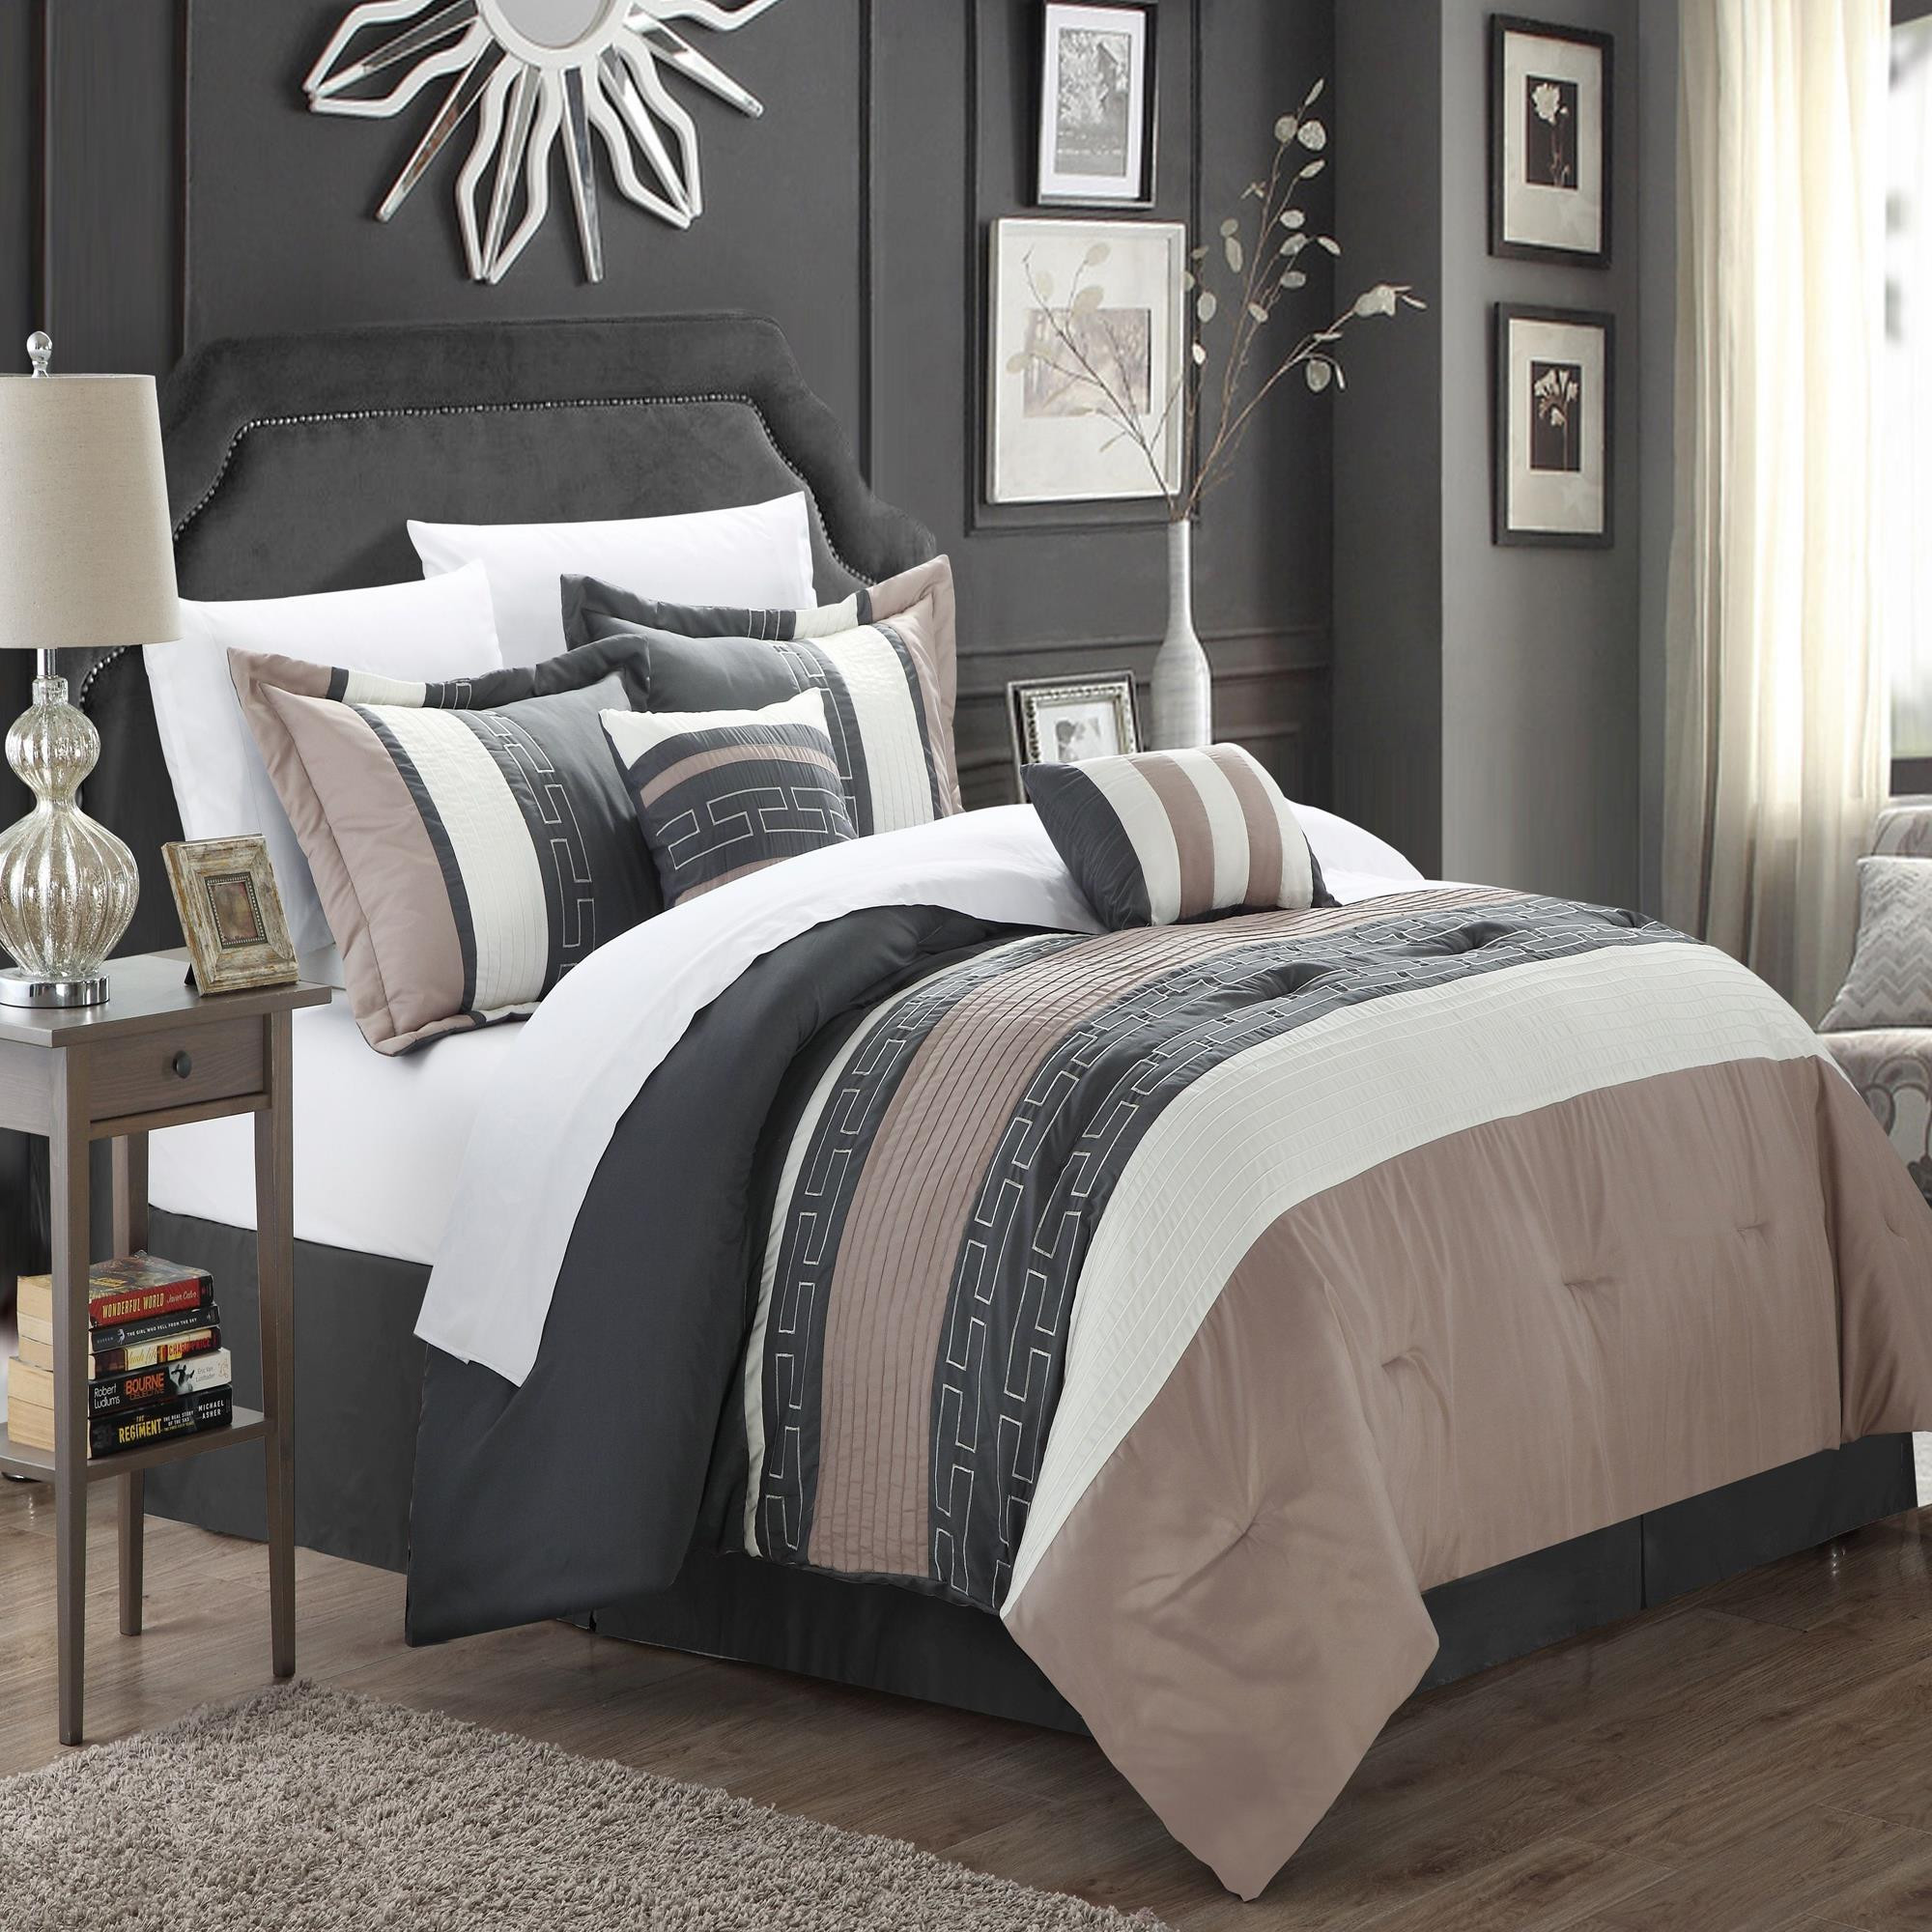 Carlton Taupe, Grey & Tan 10 Piece Comforter Bed In A Bag Set